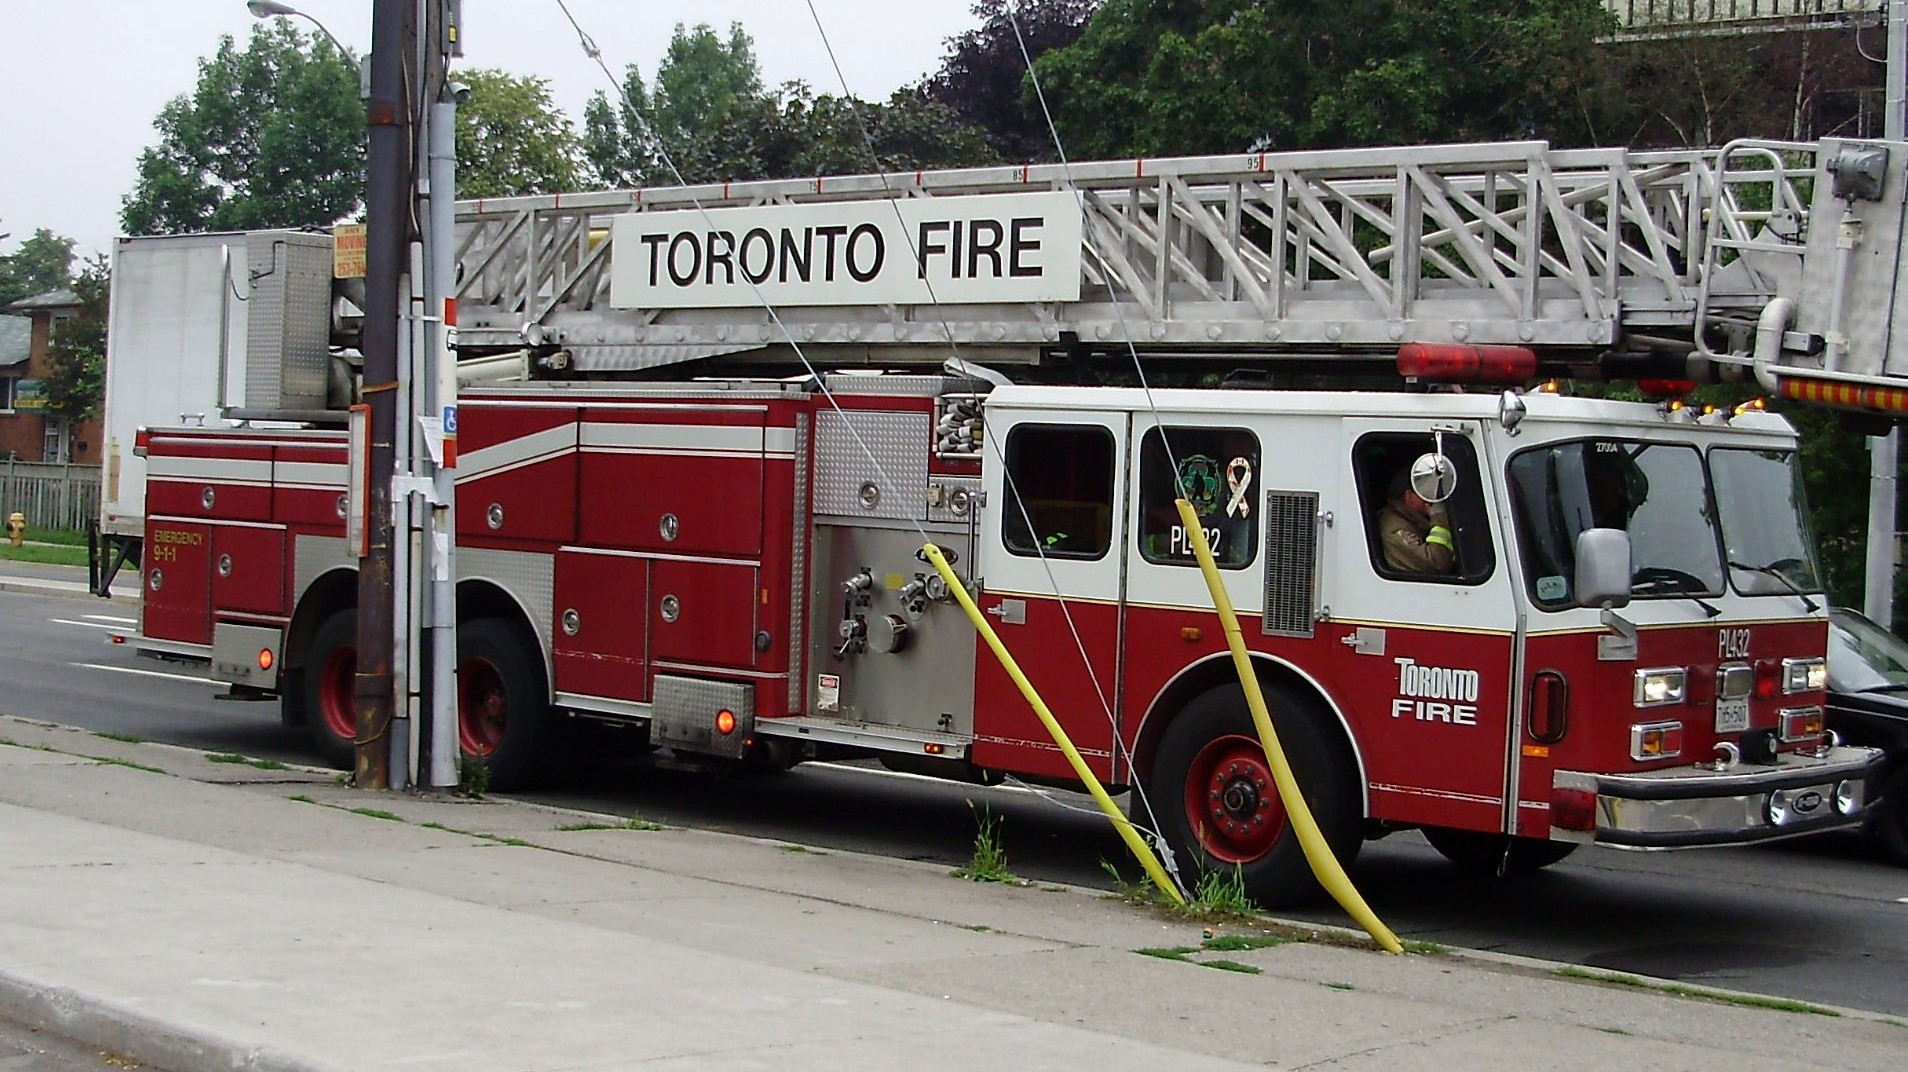 Two injured in apartment fire in Weston and Finch area ...